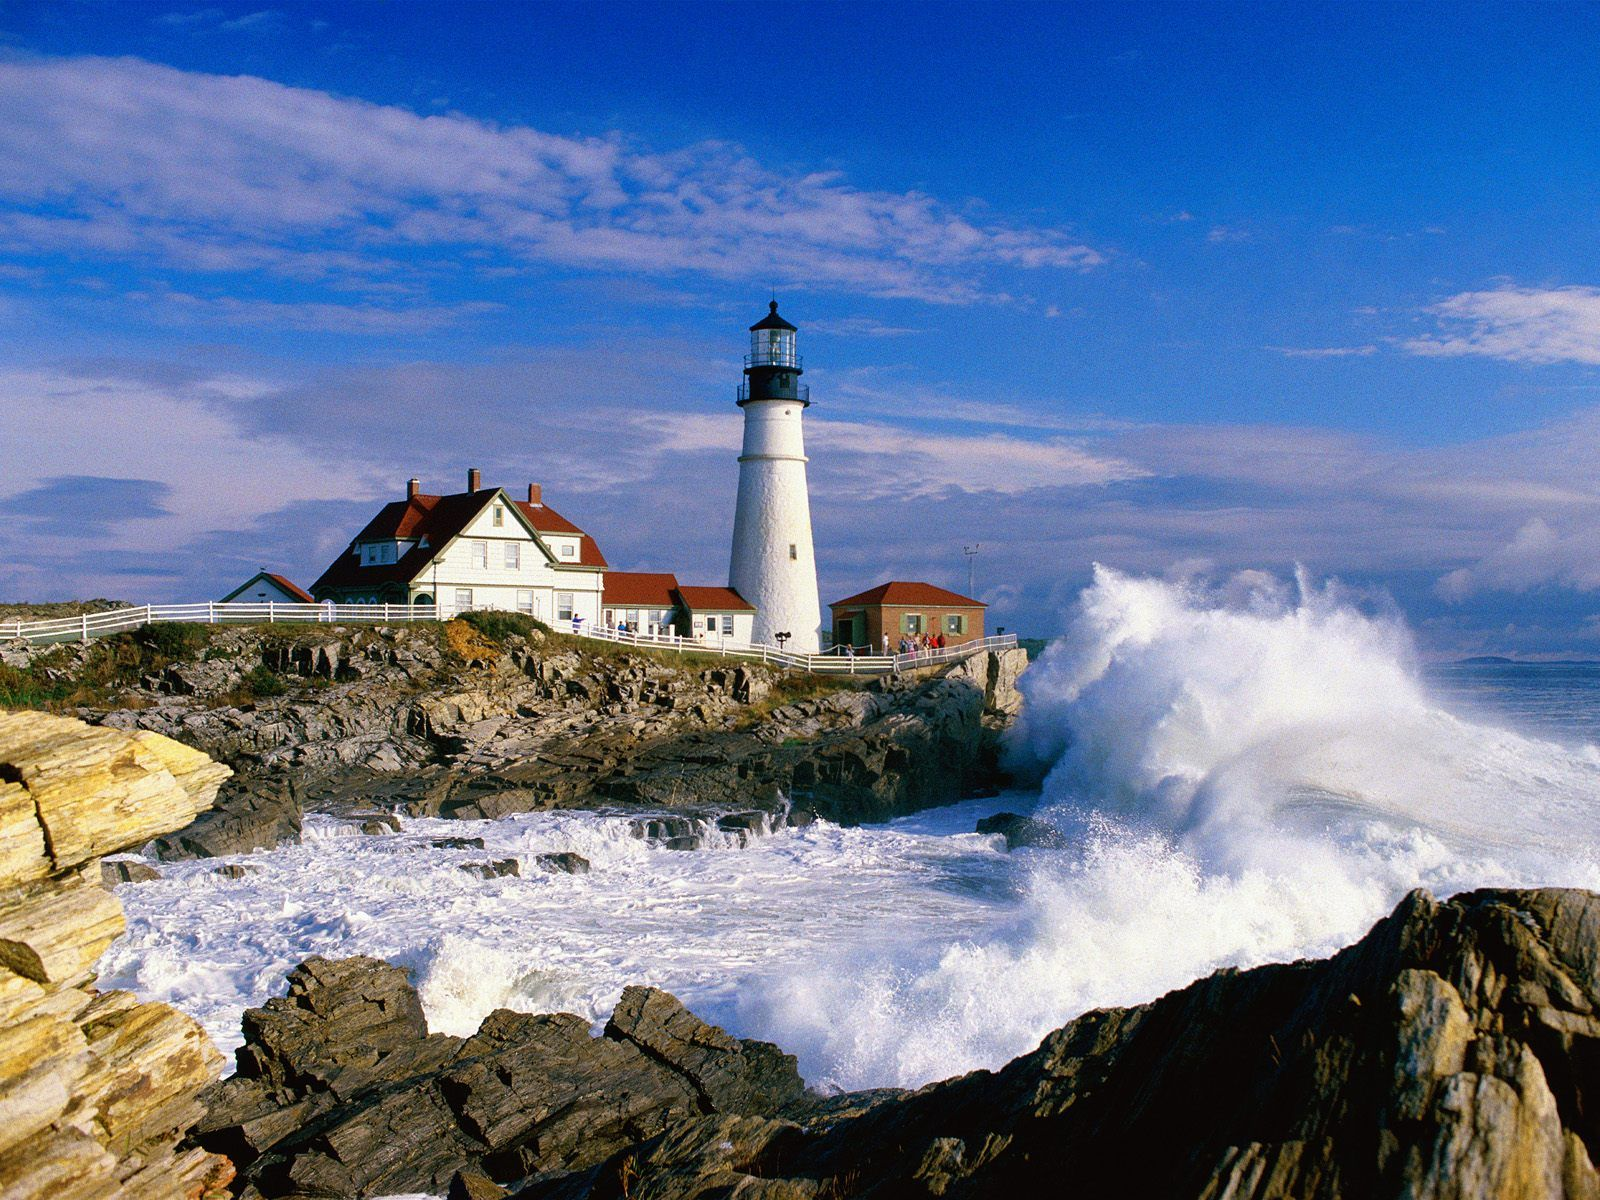 1600x1200 TI:212 - Maine Scenery Wallpaper, Maine Scenery HD Pictures - 35 ...